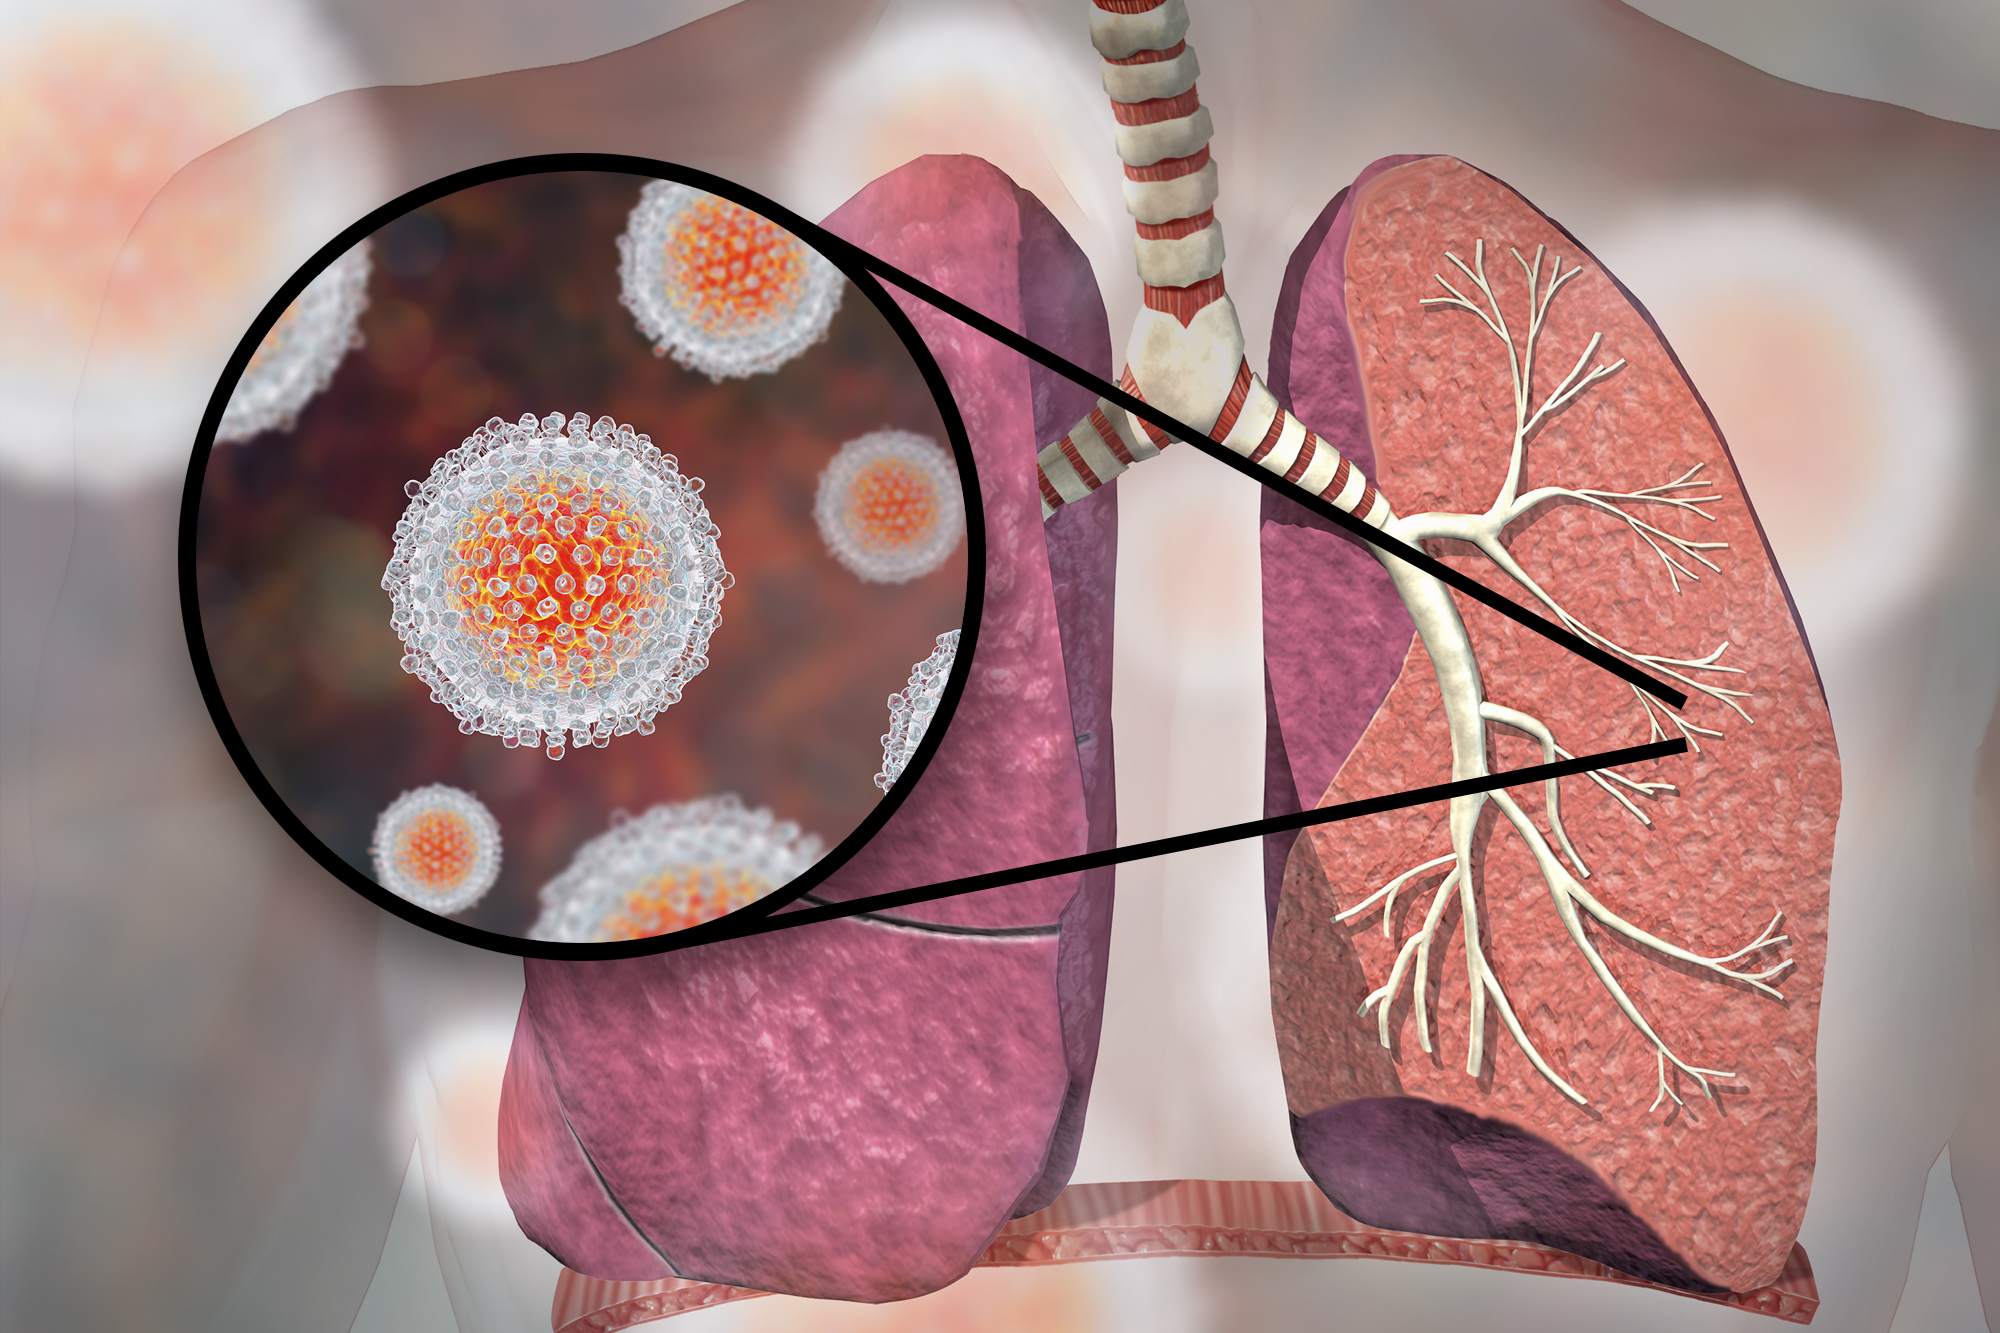 Lung and Heart Transplants From HCV-Infected Donors: Expert